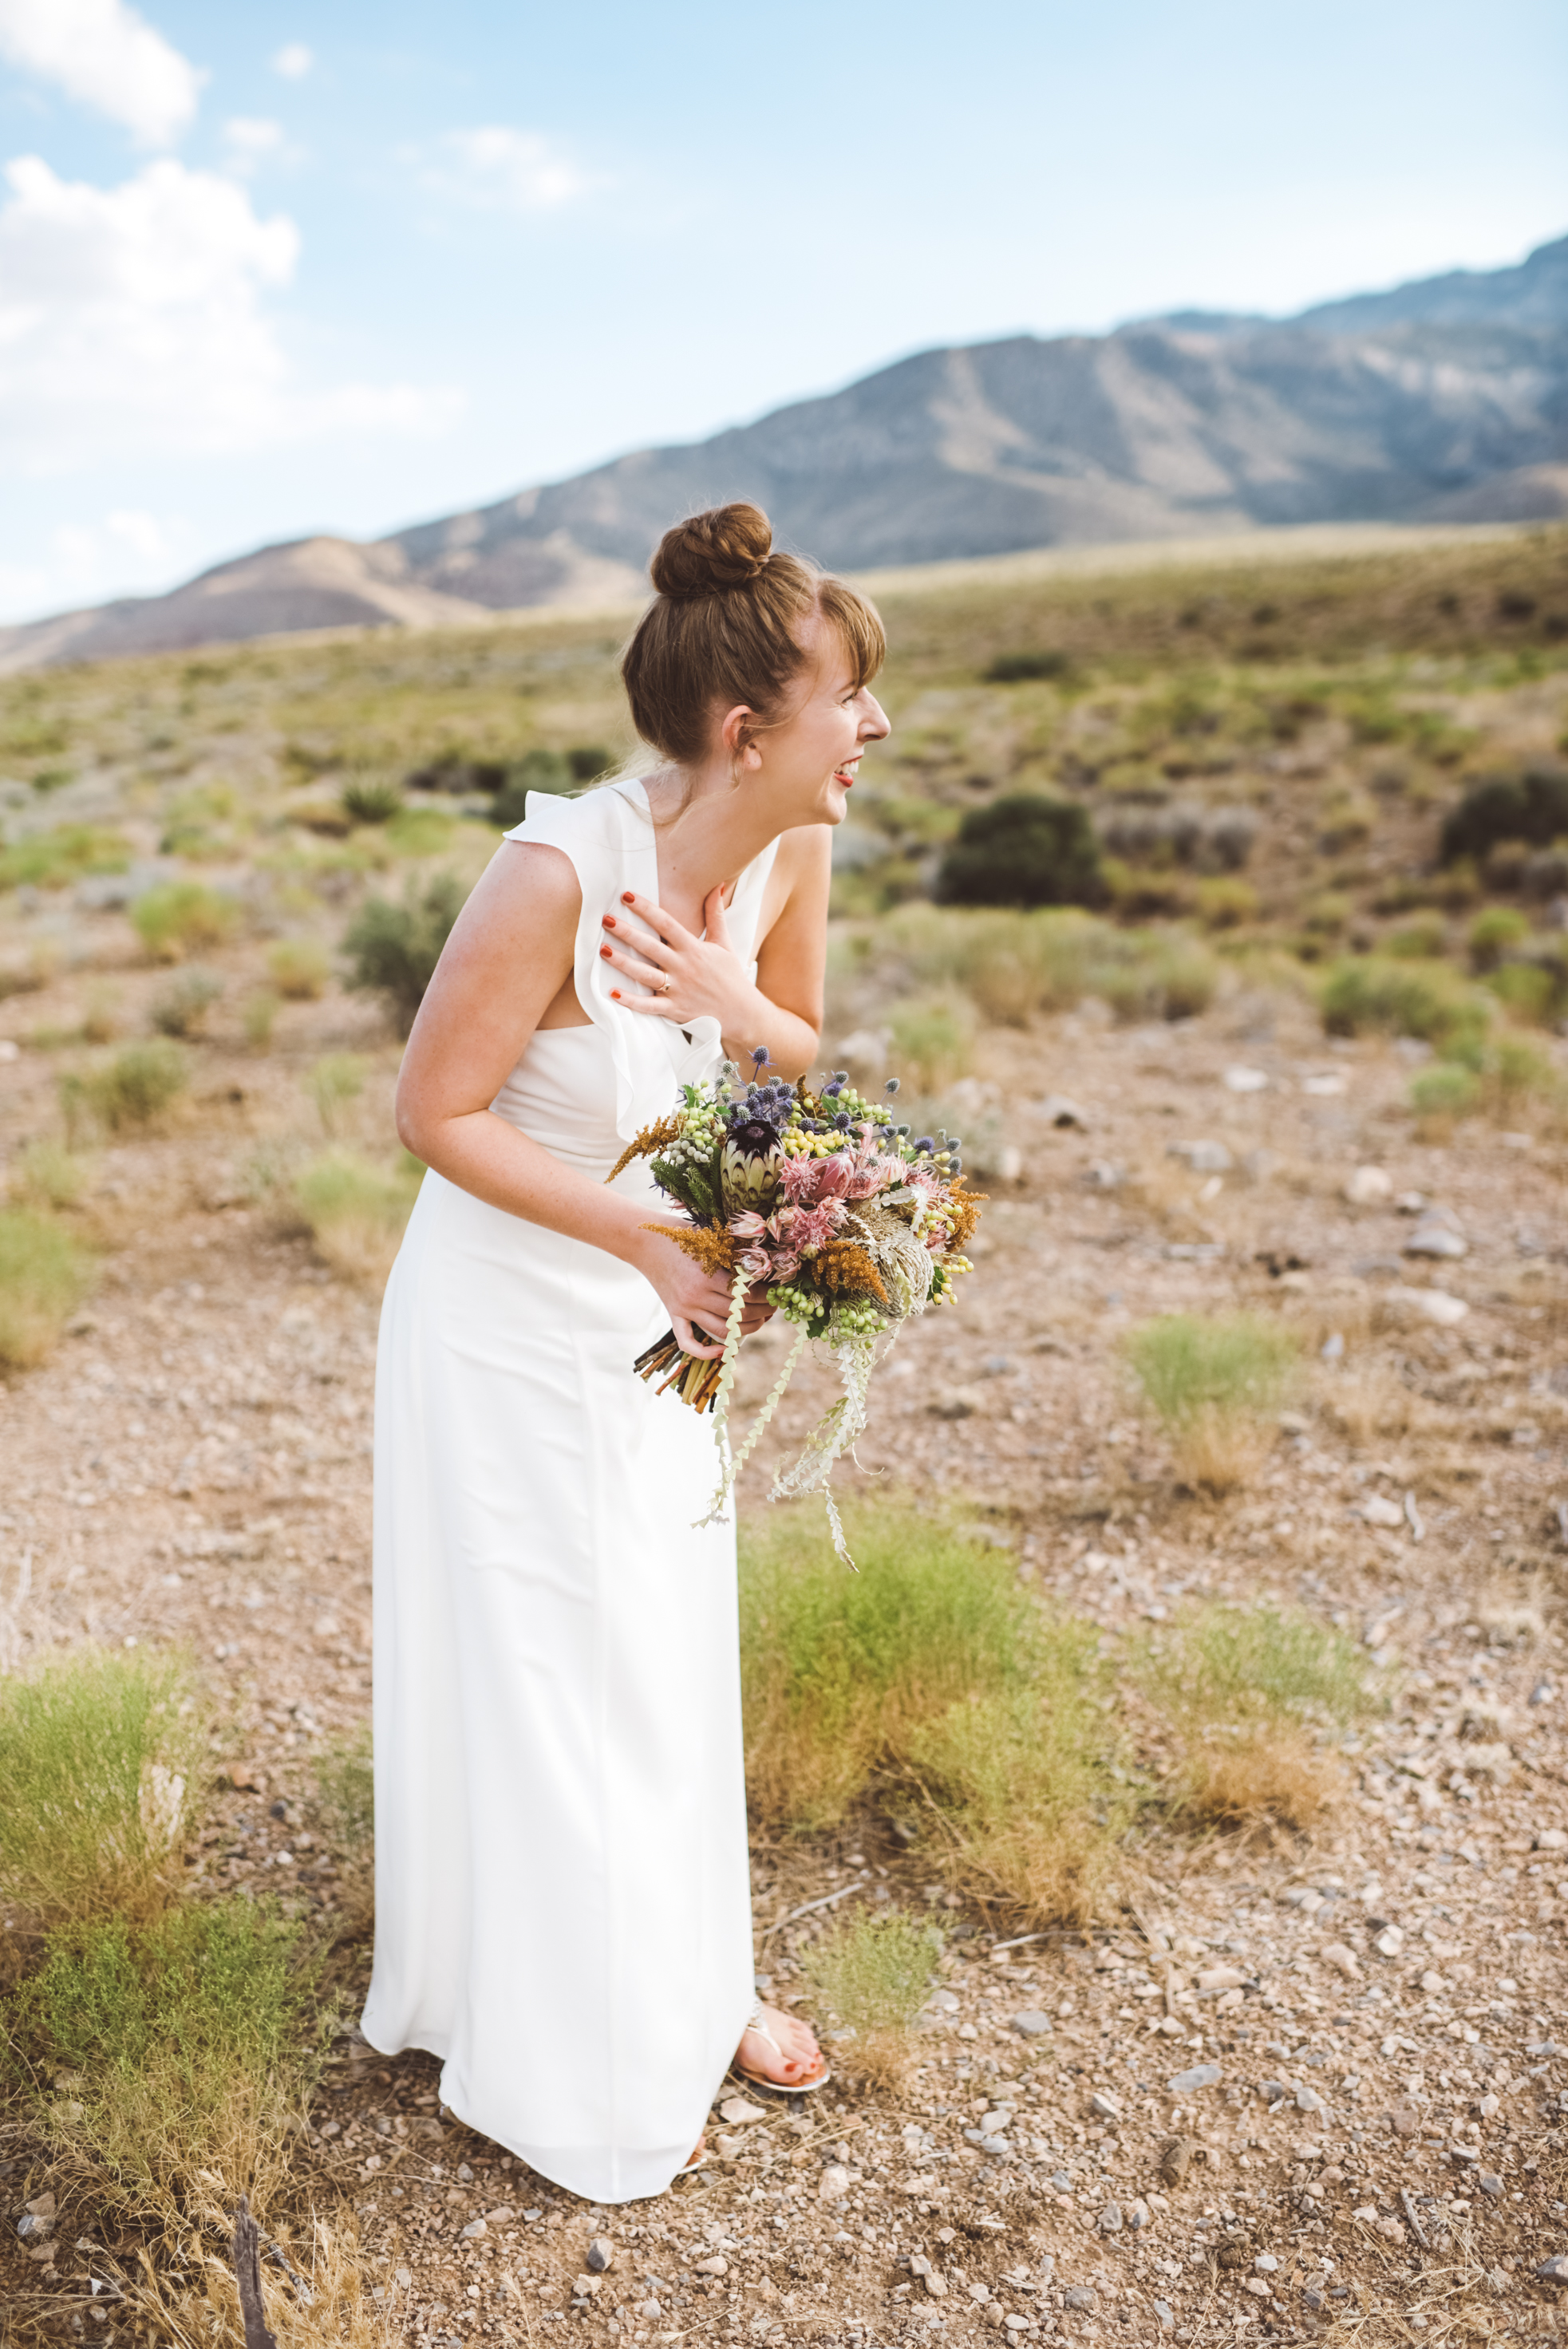 FLora Pop Desert Ceremony Red Rock Las Vegas Photography by Ashley Marie-12.jpg